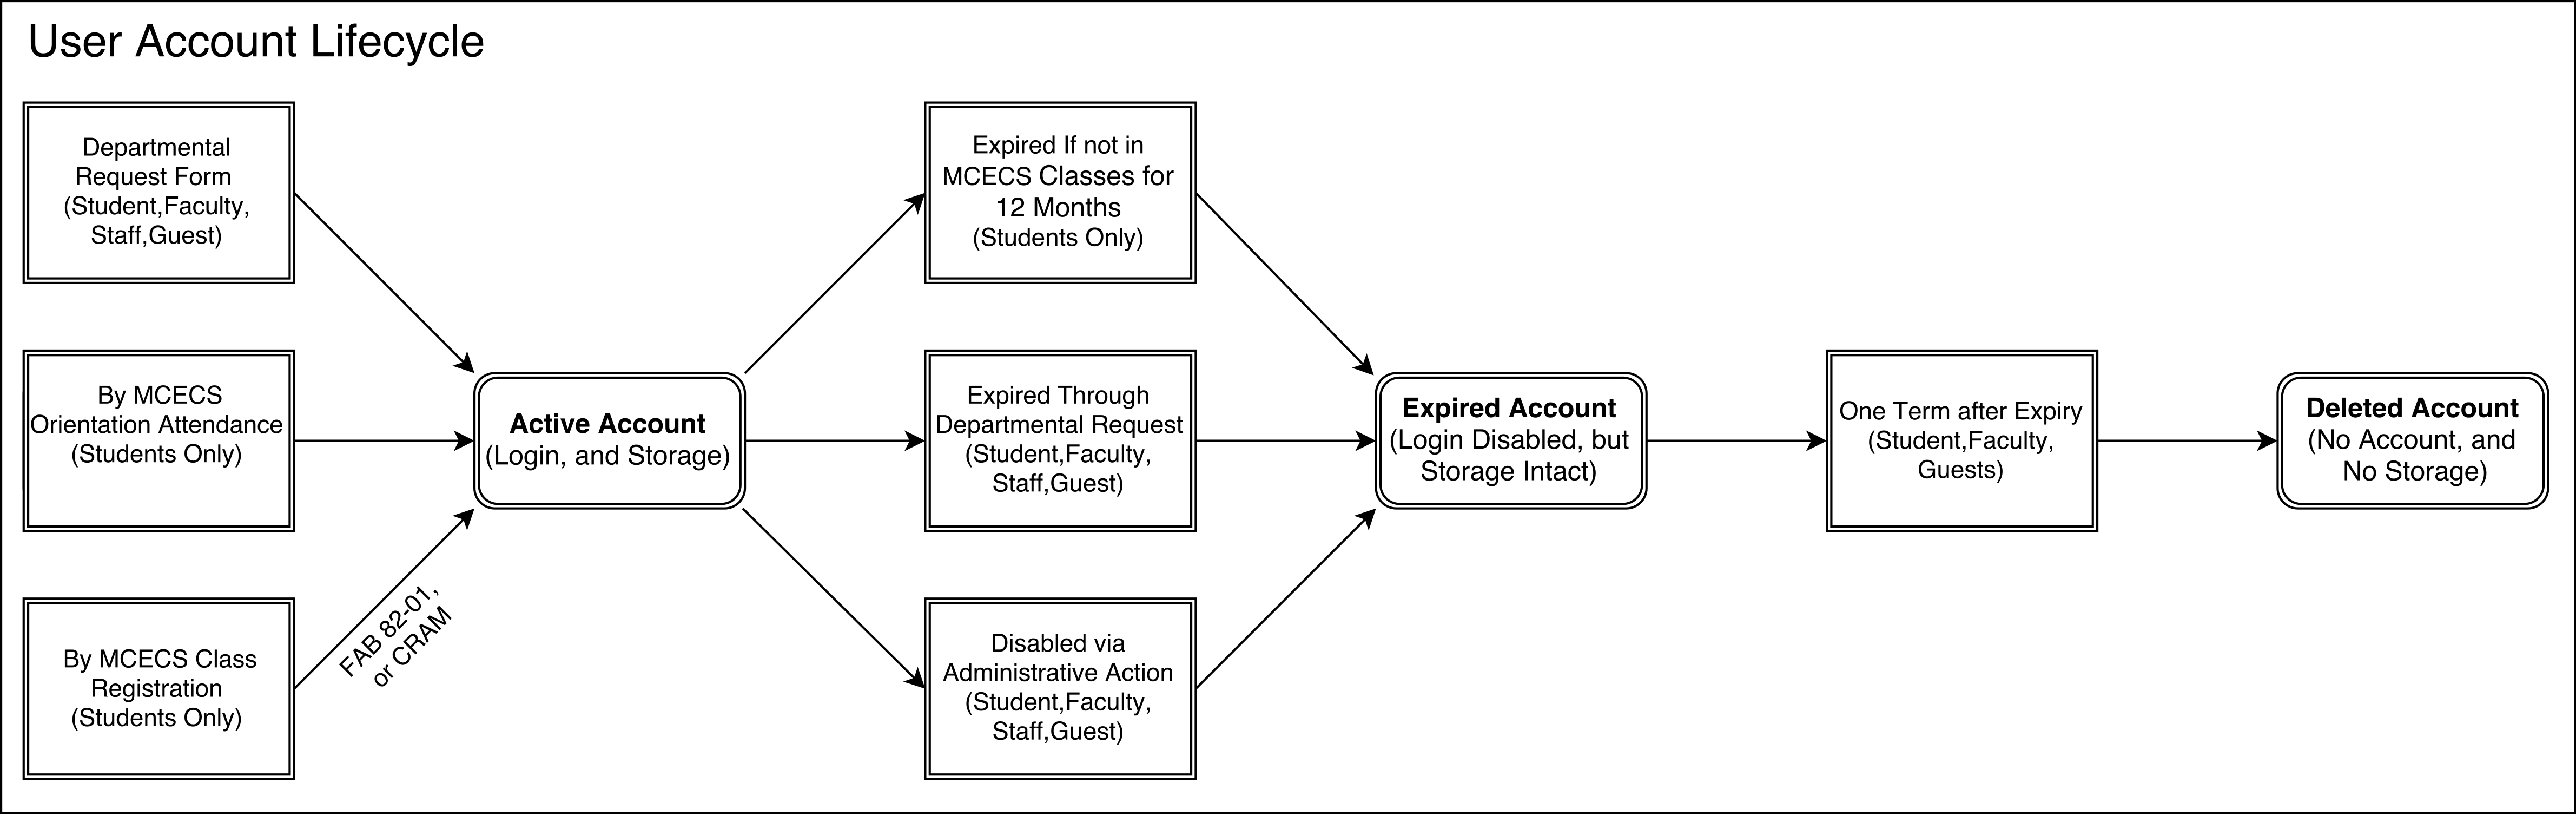 Flowchart of the MCECS Account Lifecycle